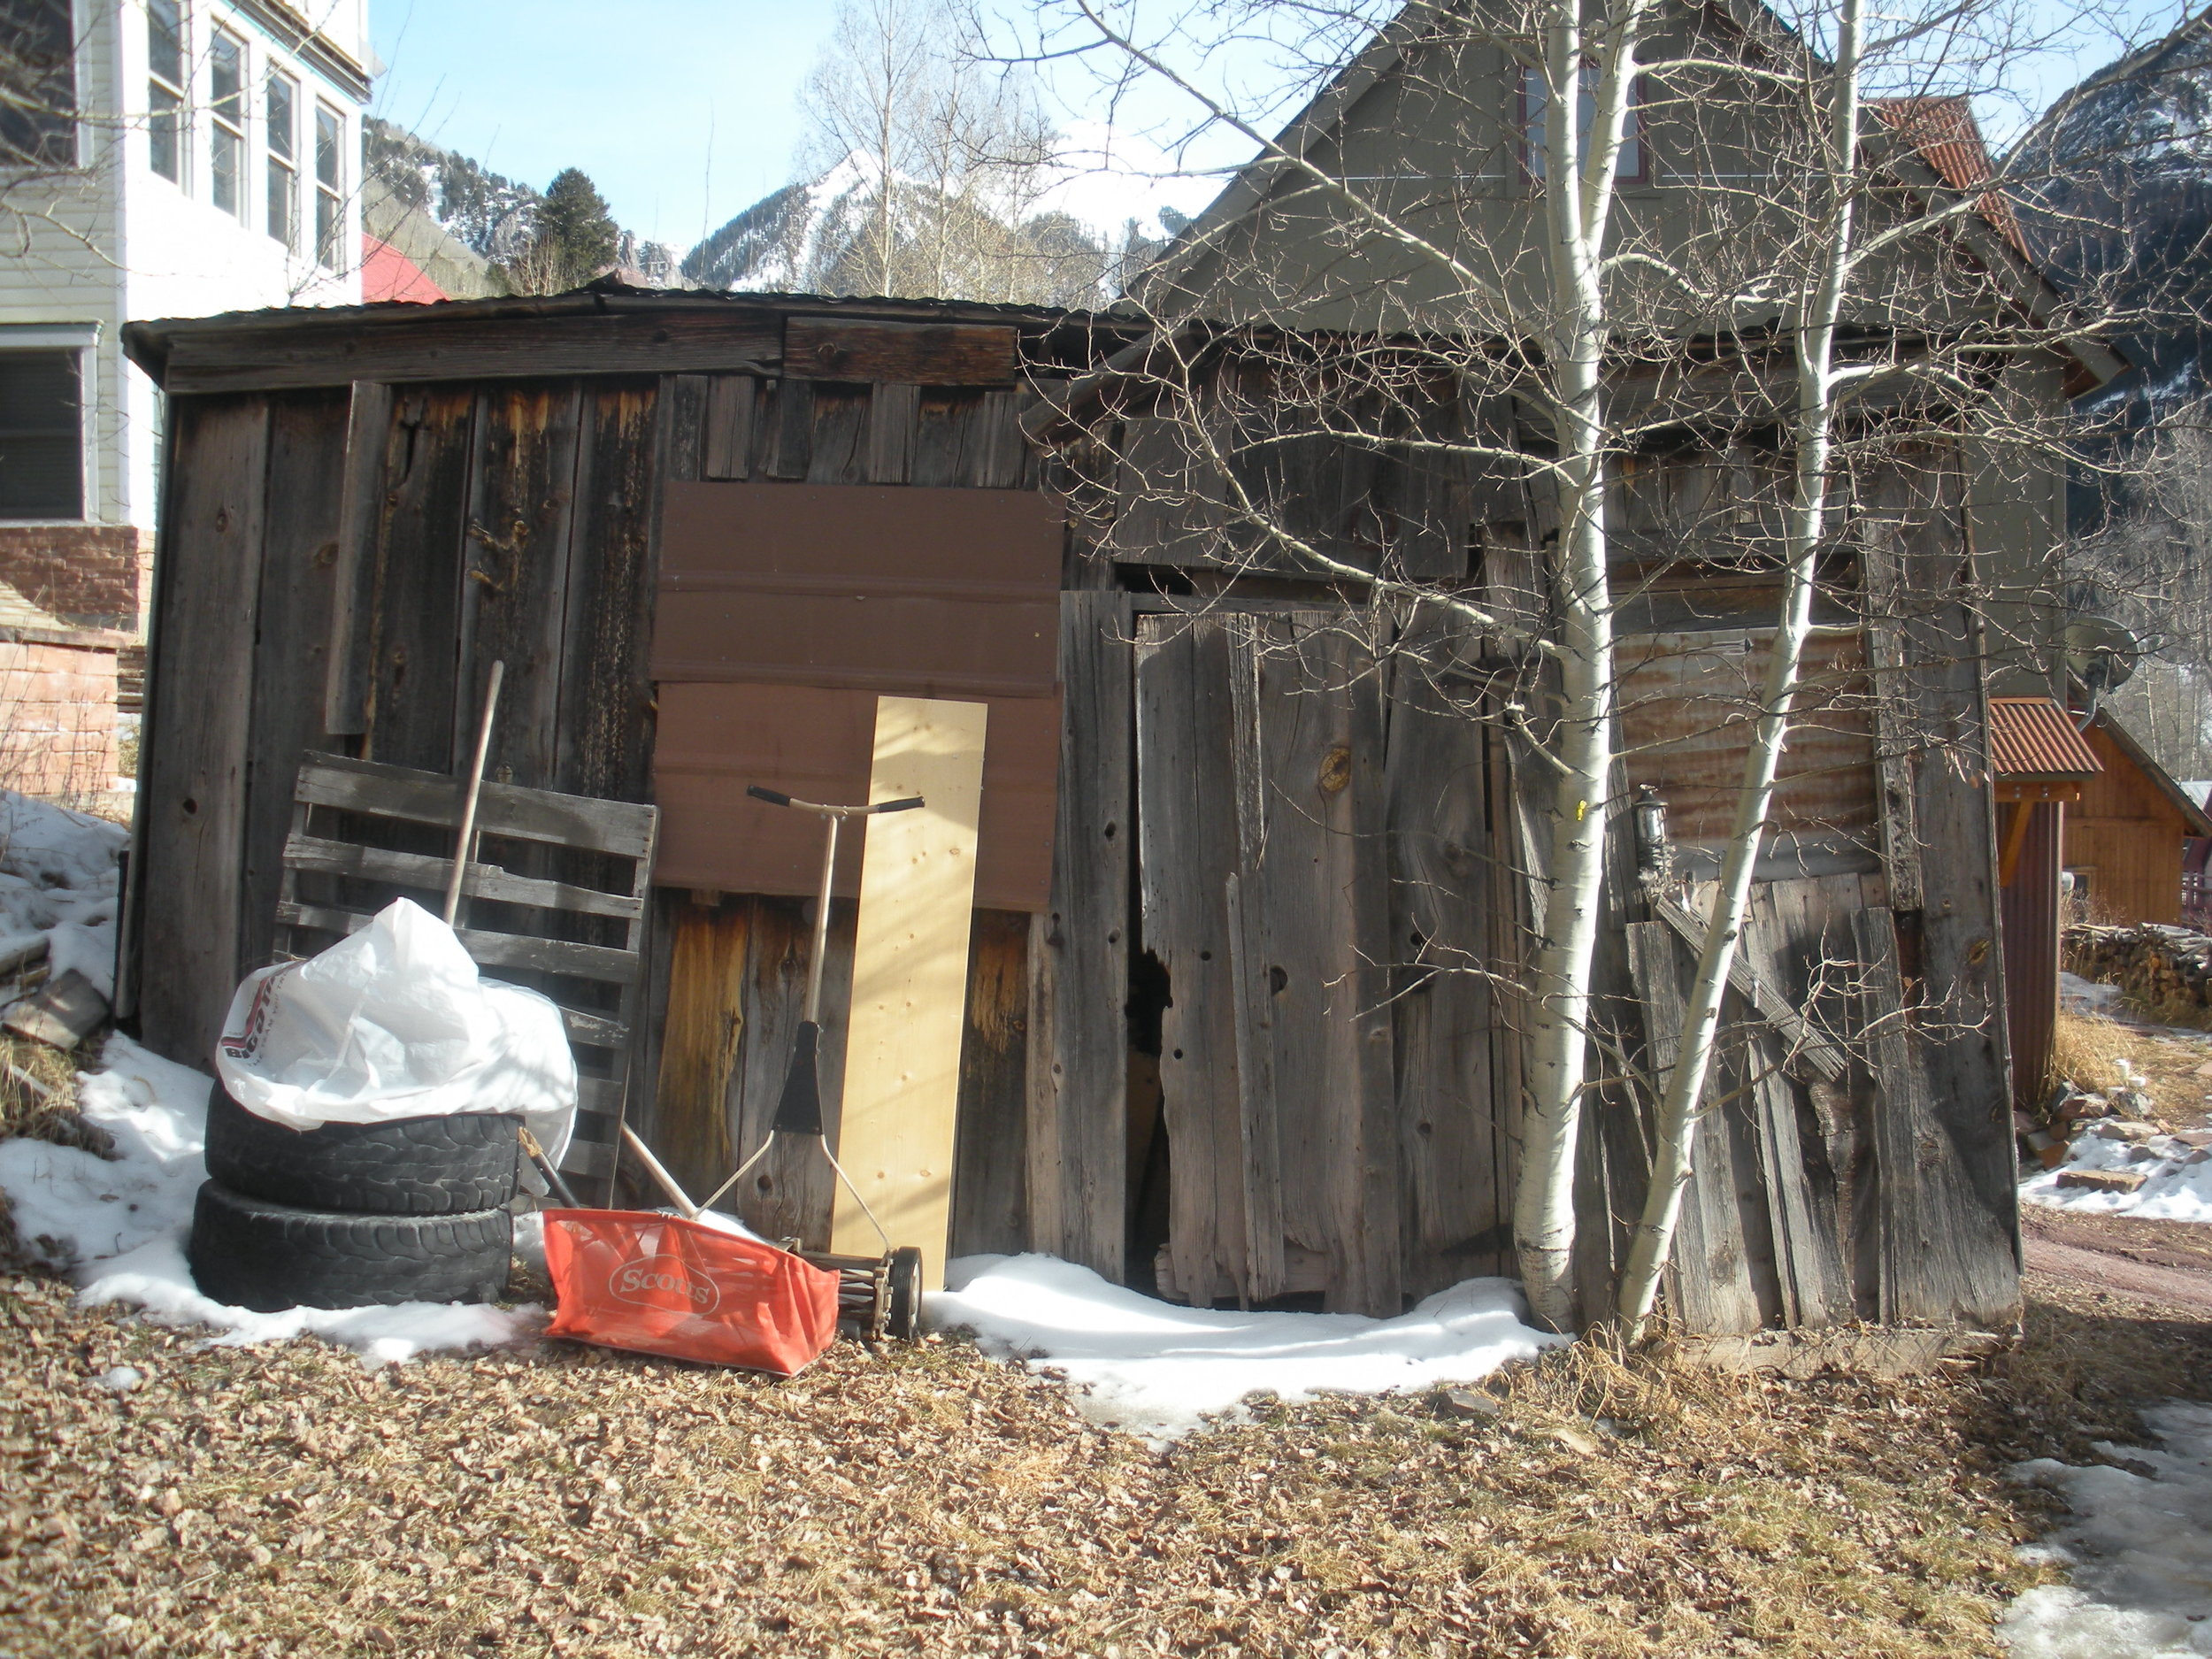 218 N Willow shed.JPG